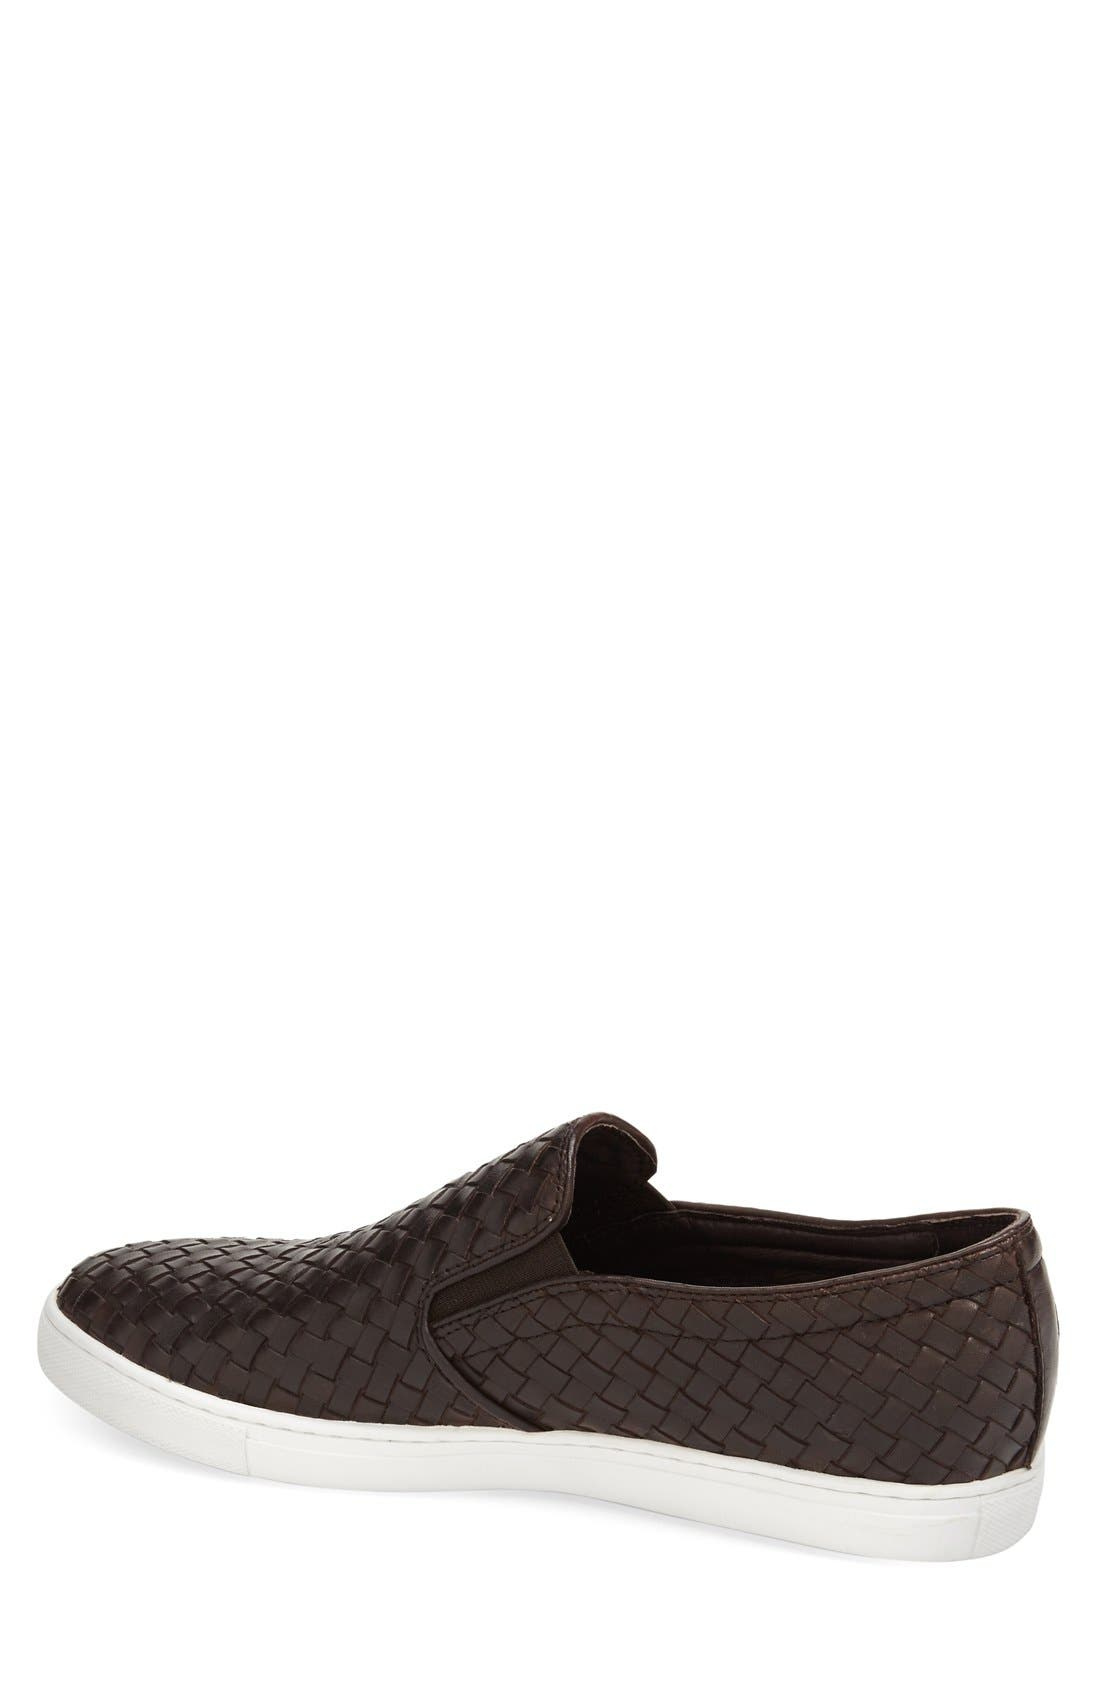 Alternate Image 2  - Zanzara 'Buzz' Slip-On Sneaker (Men)